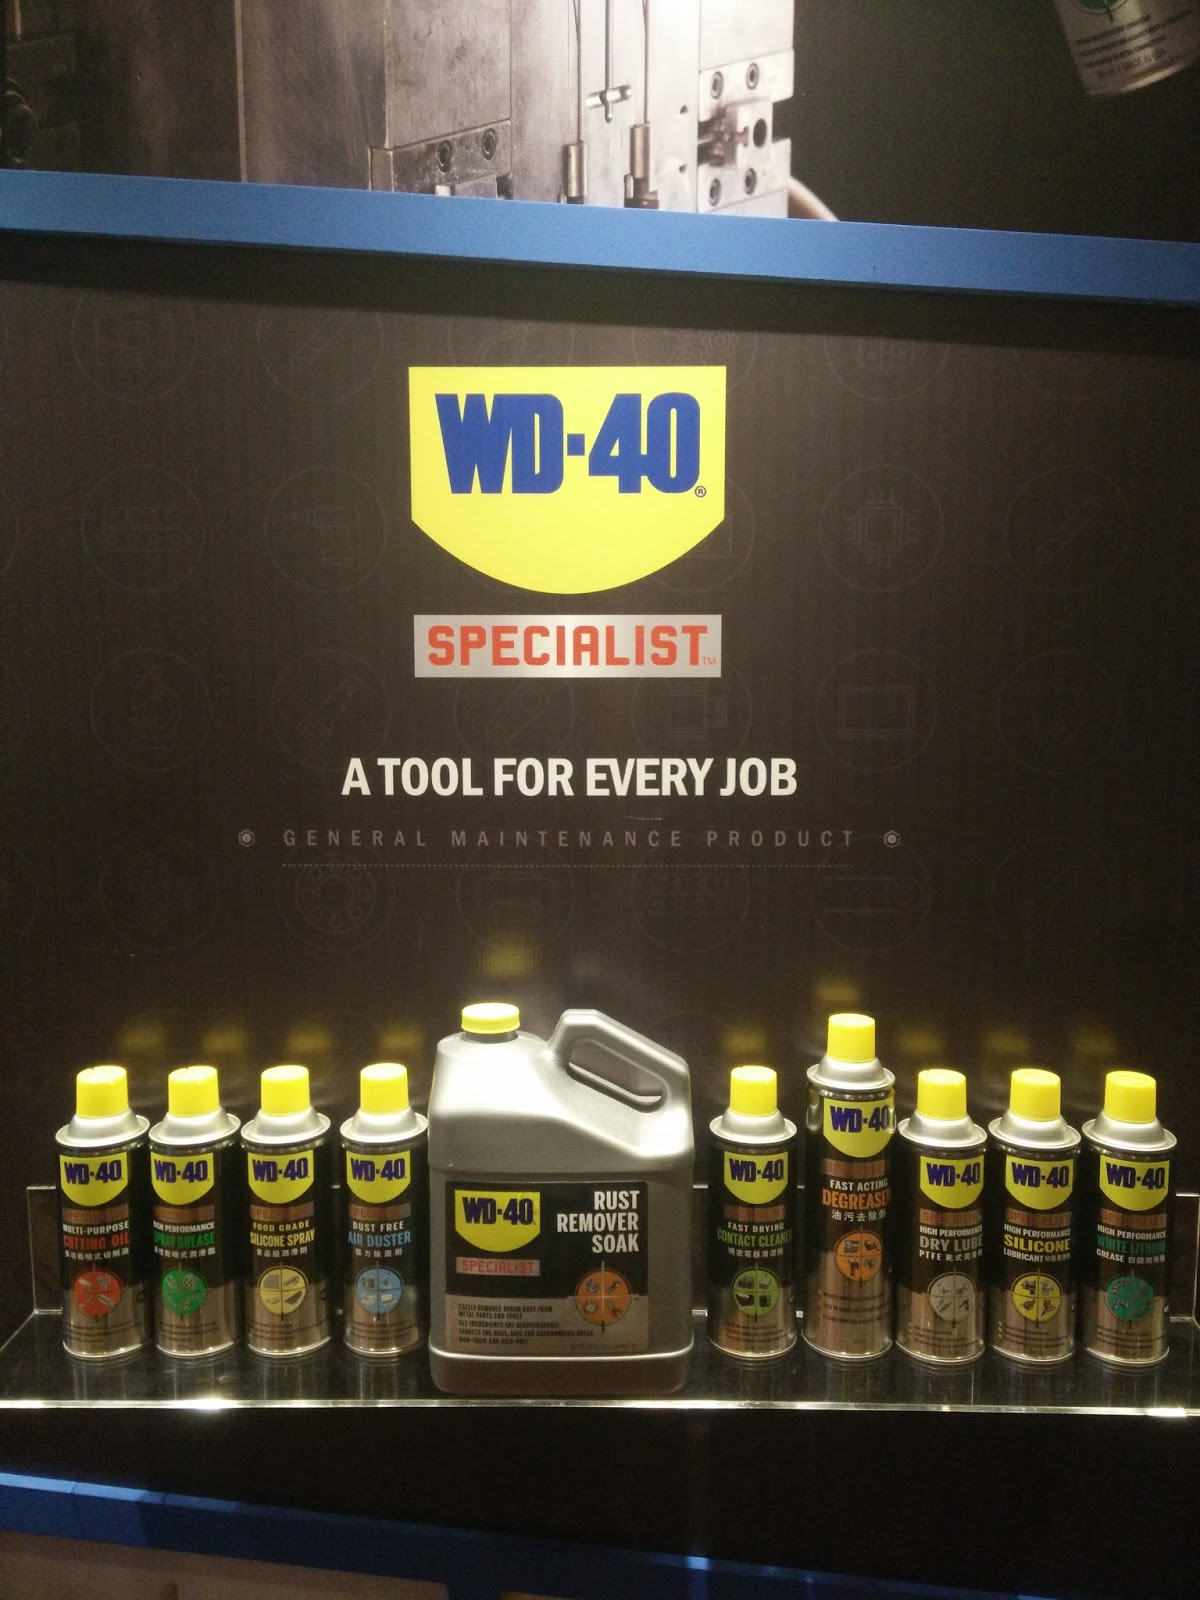 E Wen Hooi Can You Imagine The World Without Wd 40 Wd40 Belt Dressing Specialist Edition